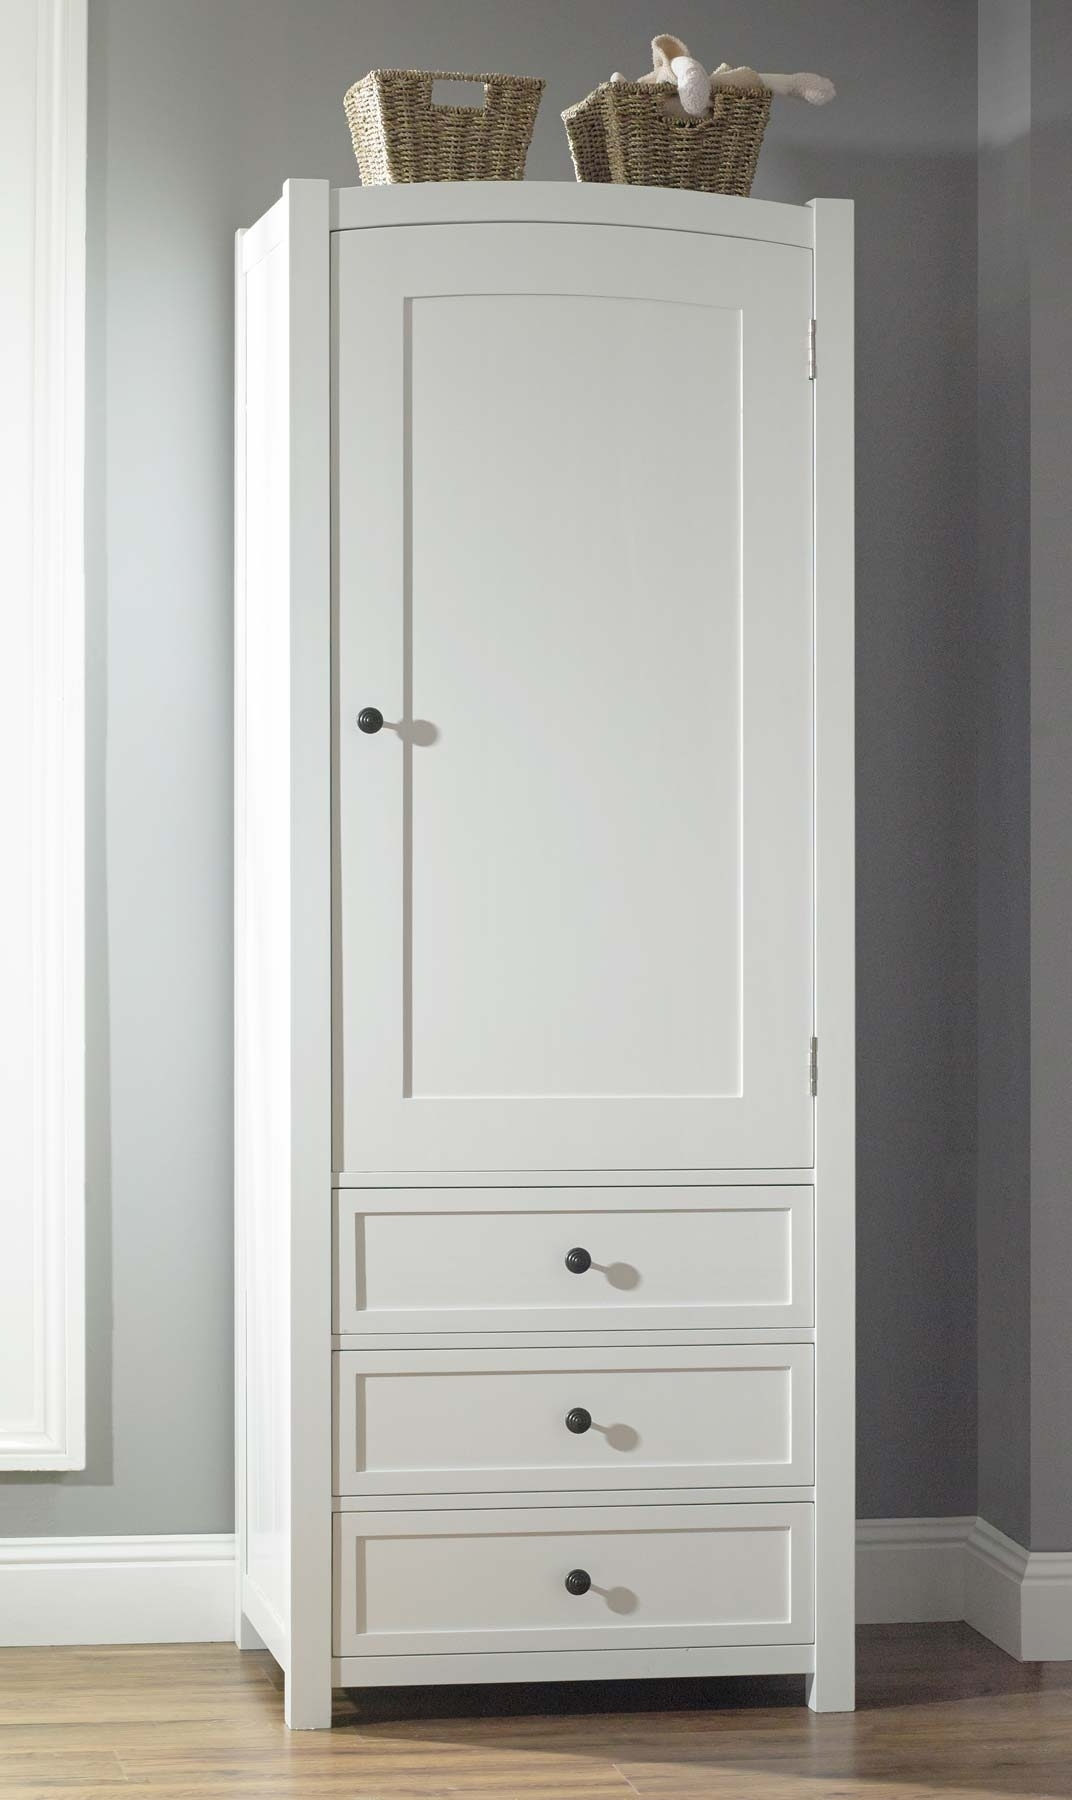 White Wood Wardrobe With Drawers • Drawer Ideas Inside Latest White Wooden Wardrobes (View 9 of 15)